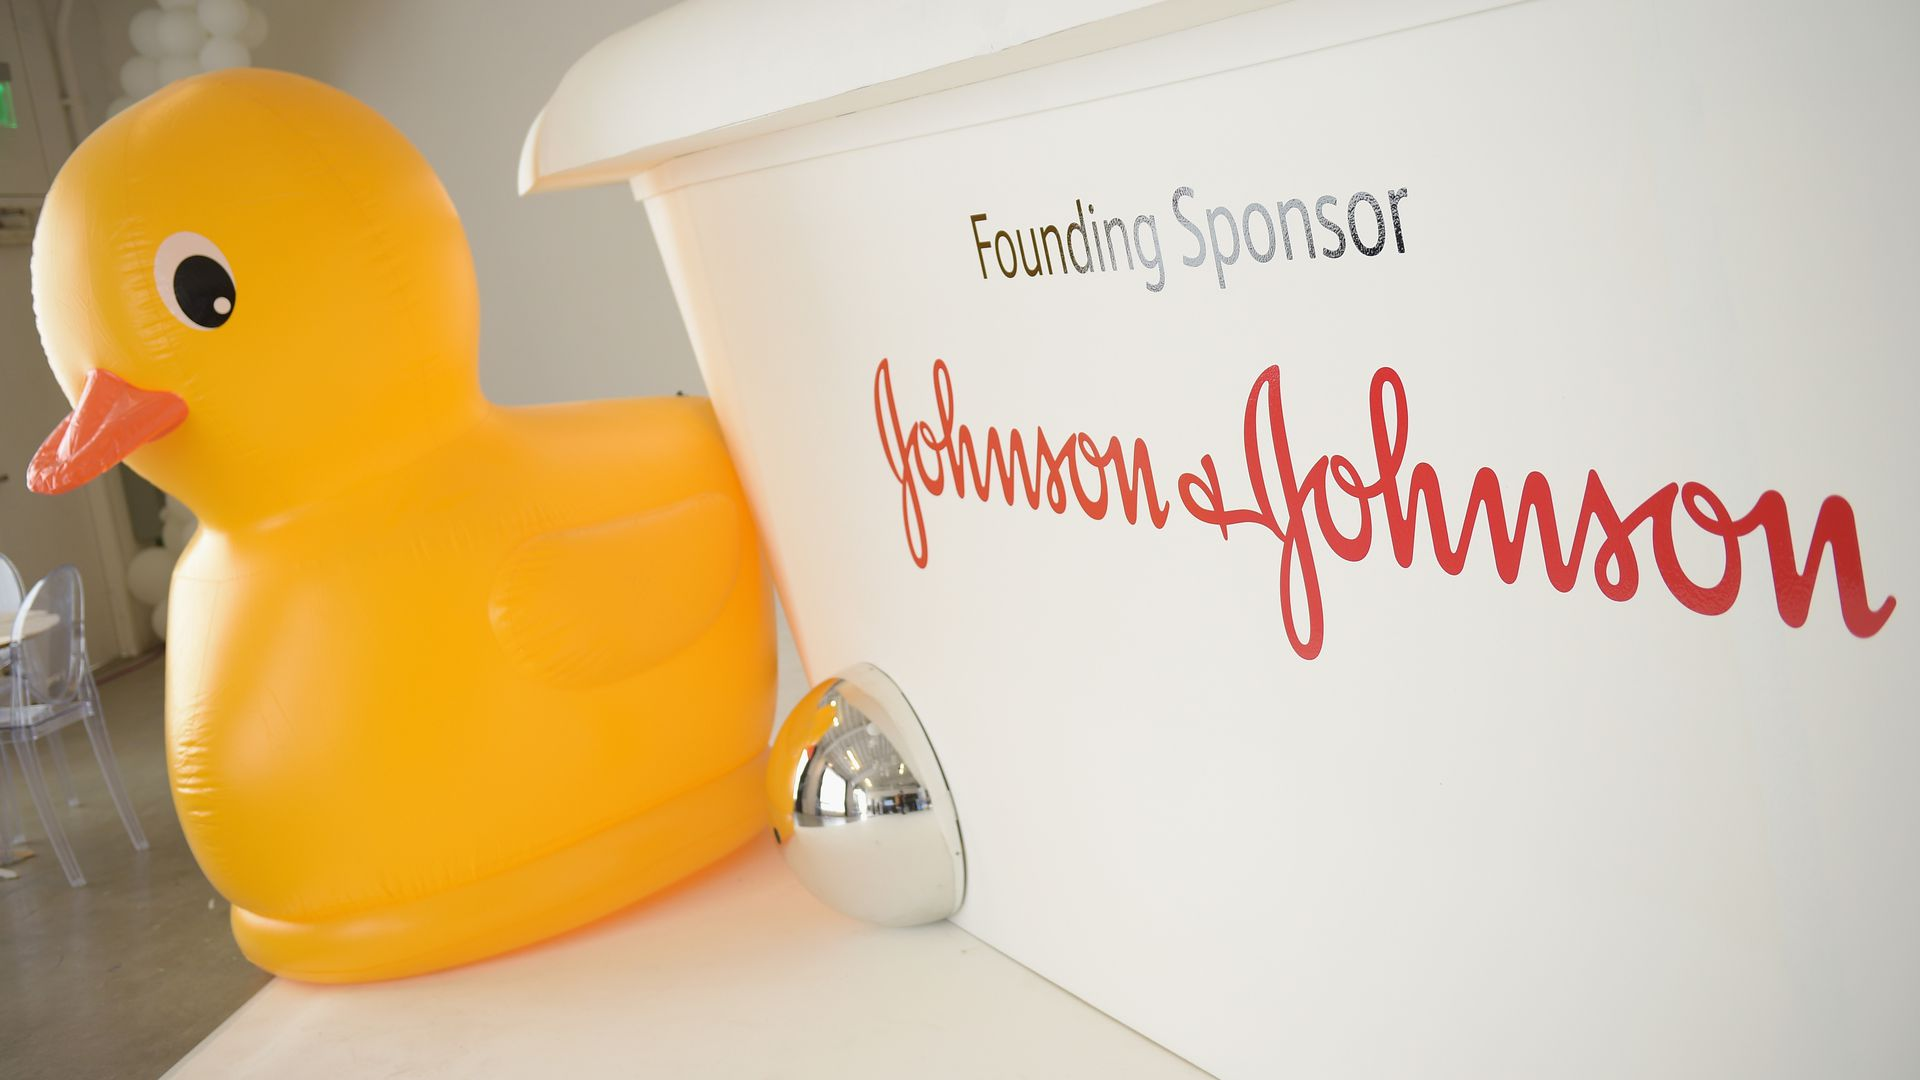 The Johnson & Johnson sign next to a rubber duck.